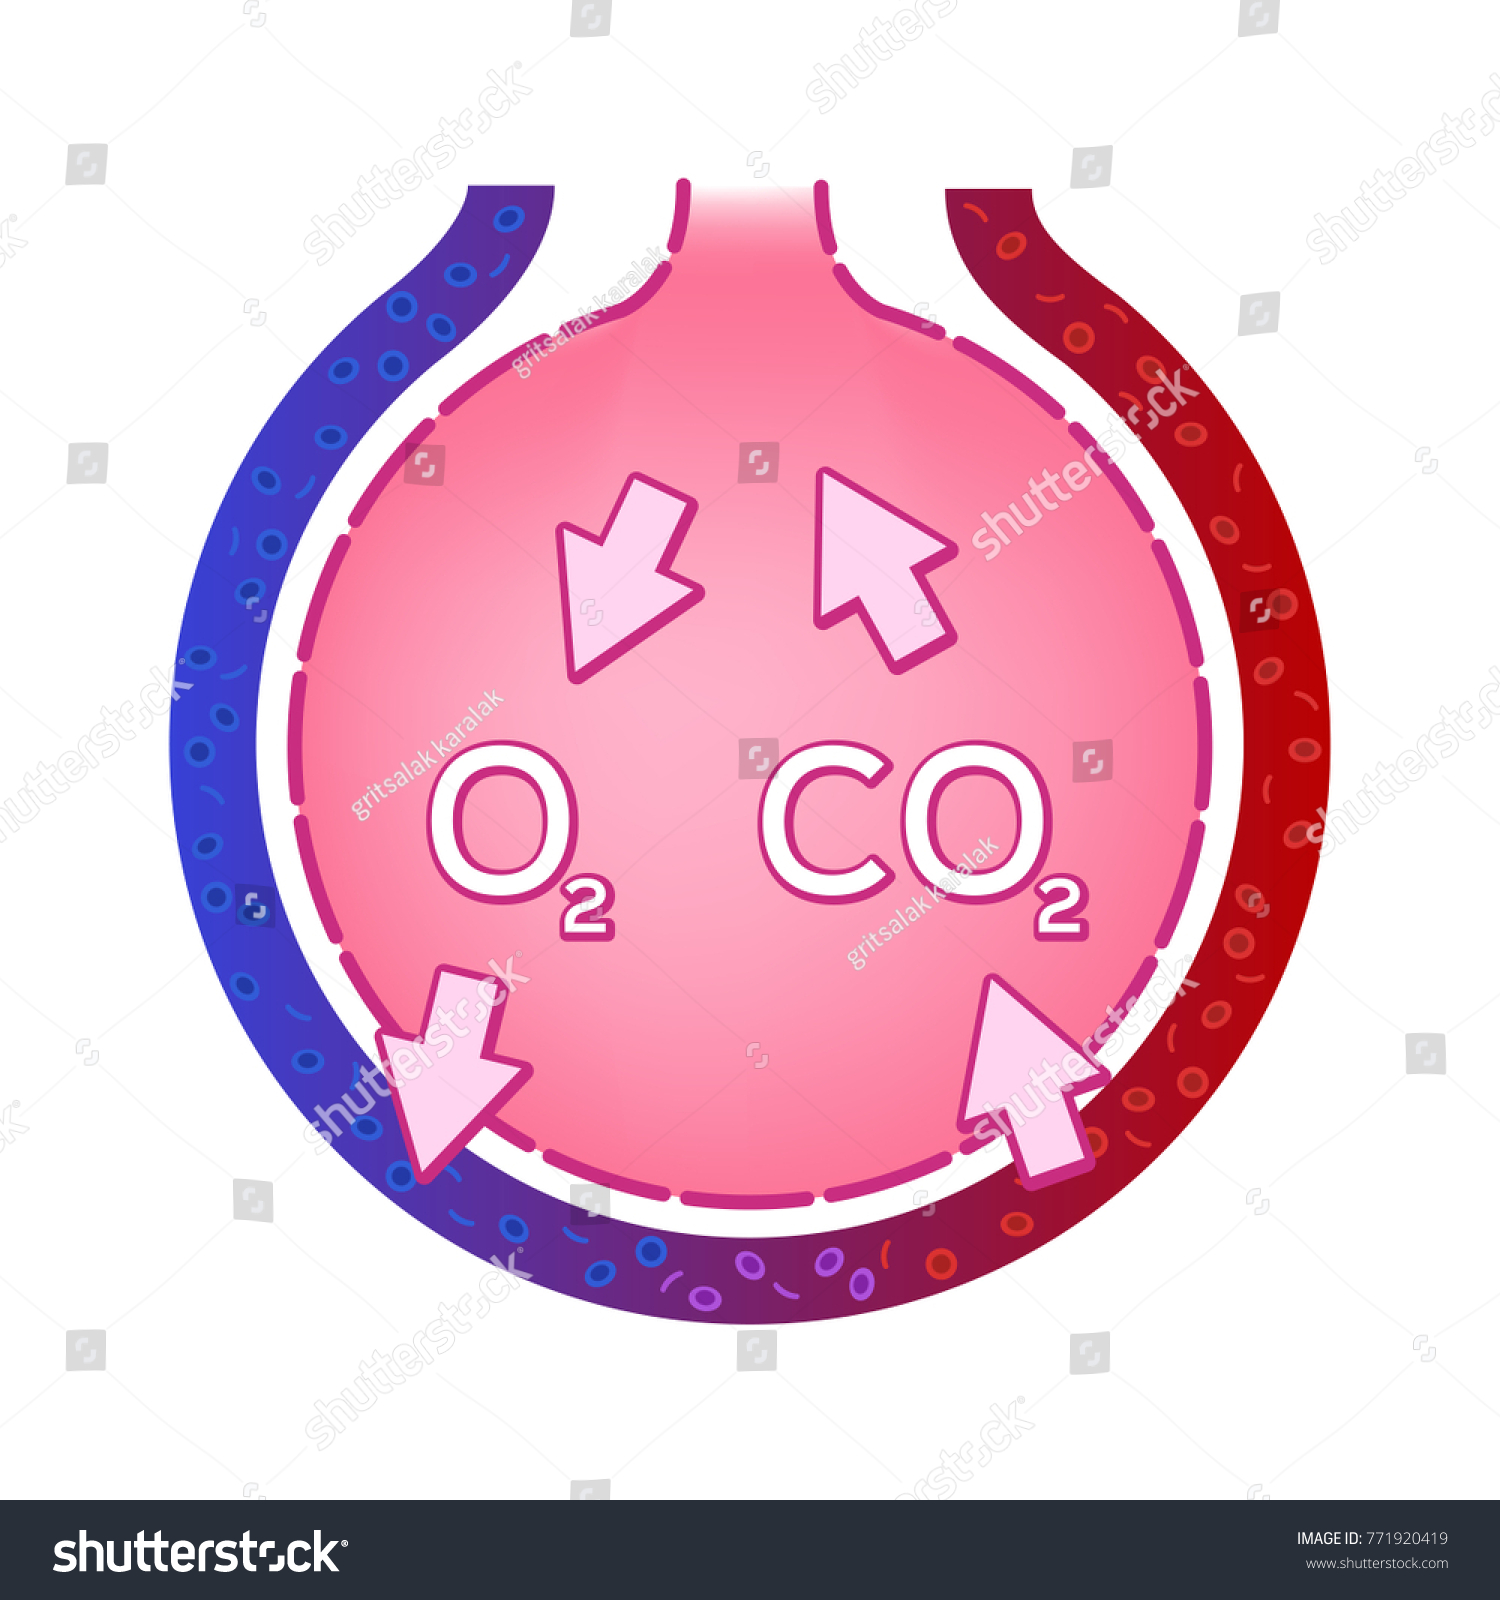 Alveolus Lung Gas Exchange Vector Anatomy Stock Vector Royalty Free